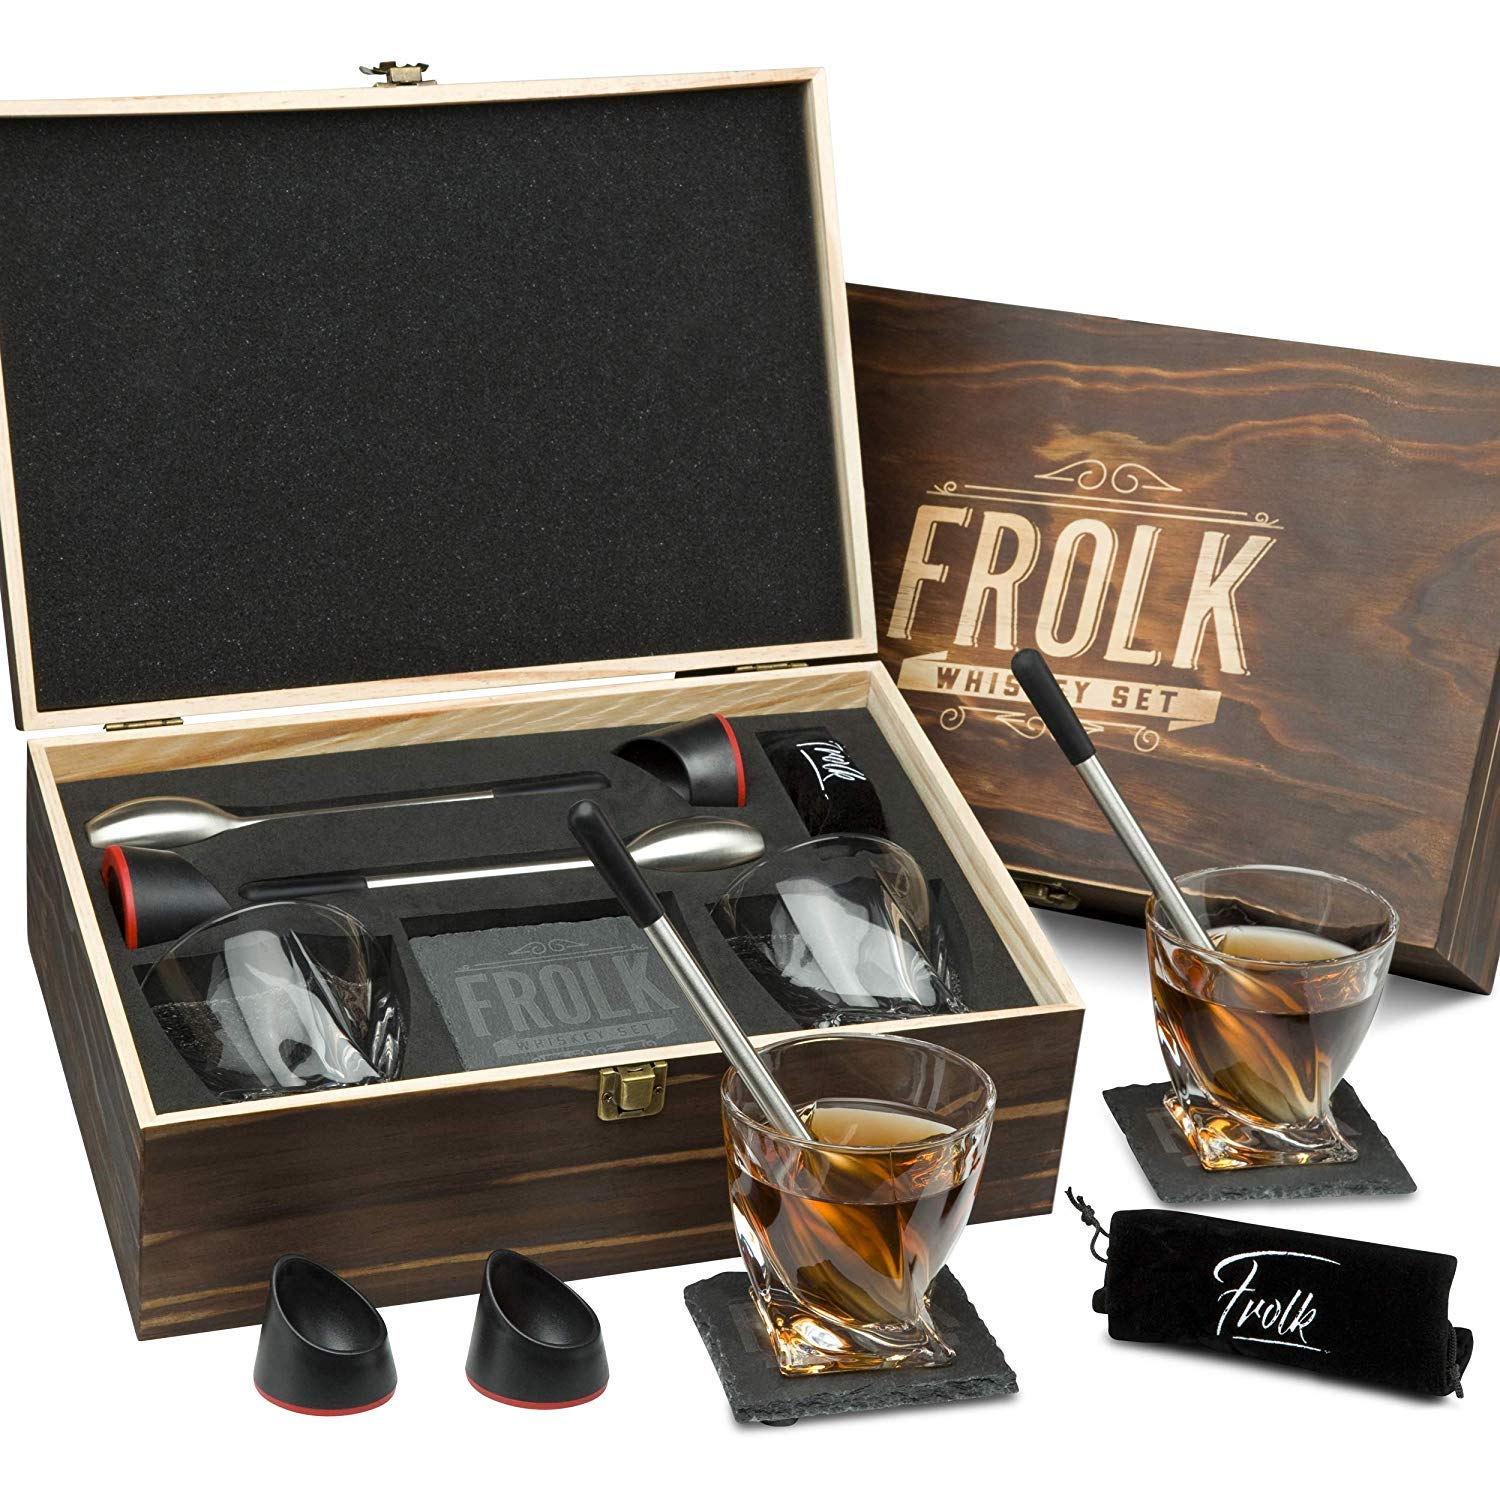 Whiskey Glasses Gift Set for Men - 2 Chilling Stainless-Steel Swizzle Sticks, 2 Bases, 2 Whiskey Glasses (11 oz), Slate Stone Coasters, Pouch, Tongs - A Luxury Set in a Real Pinewood Box